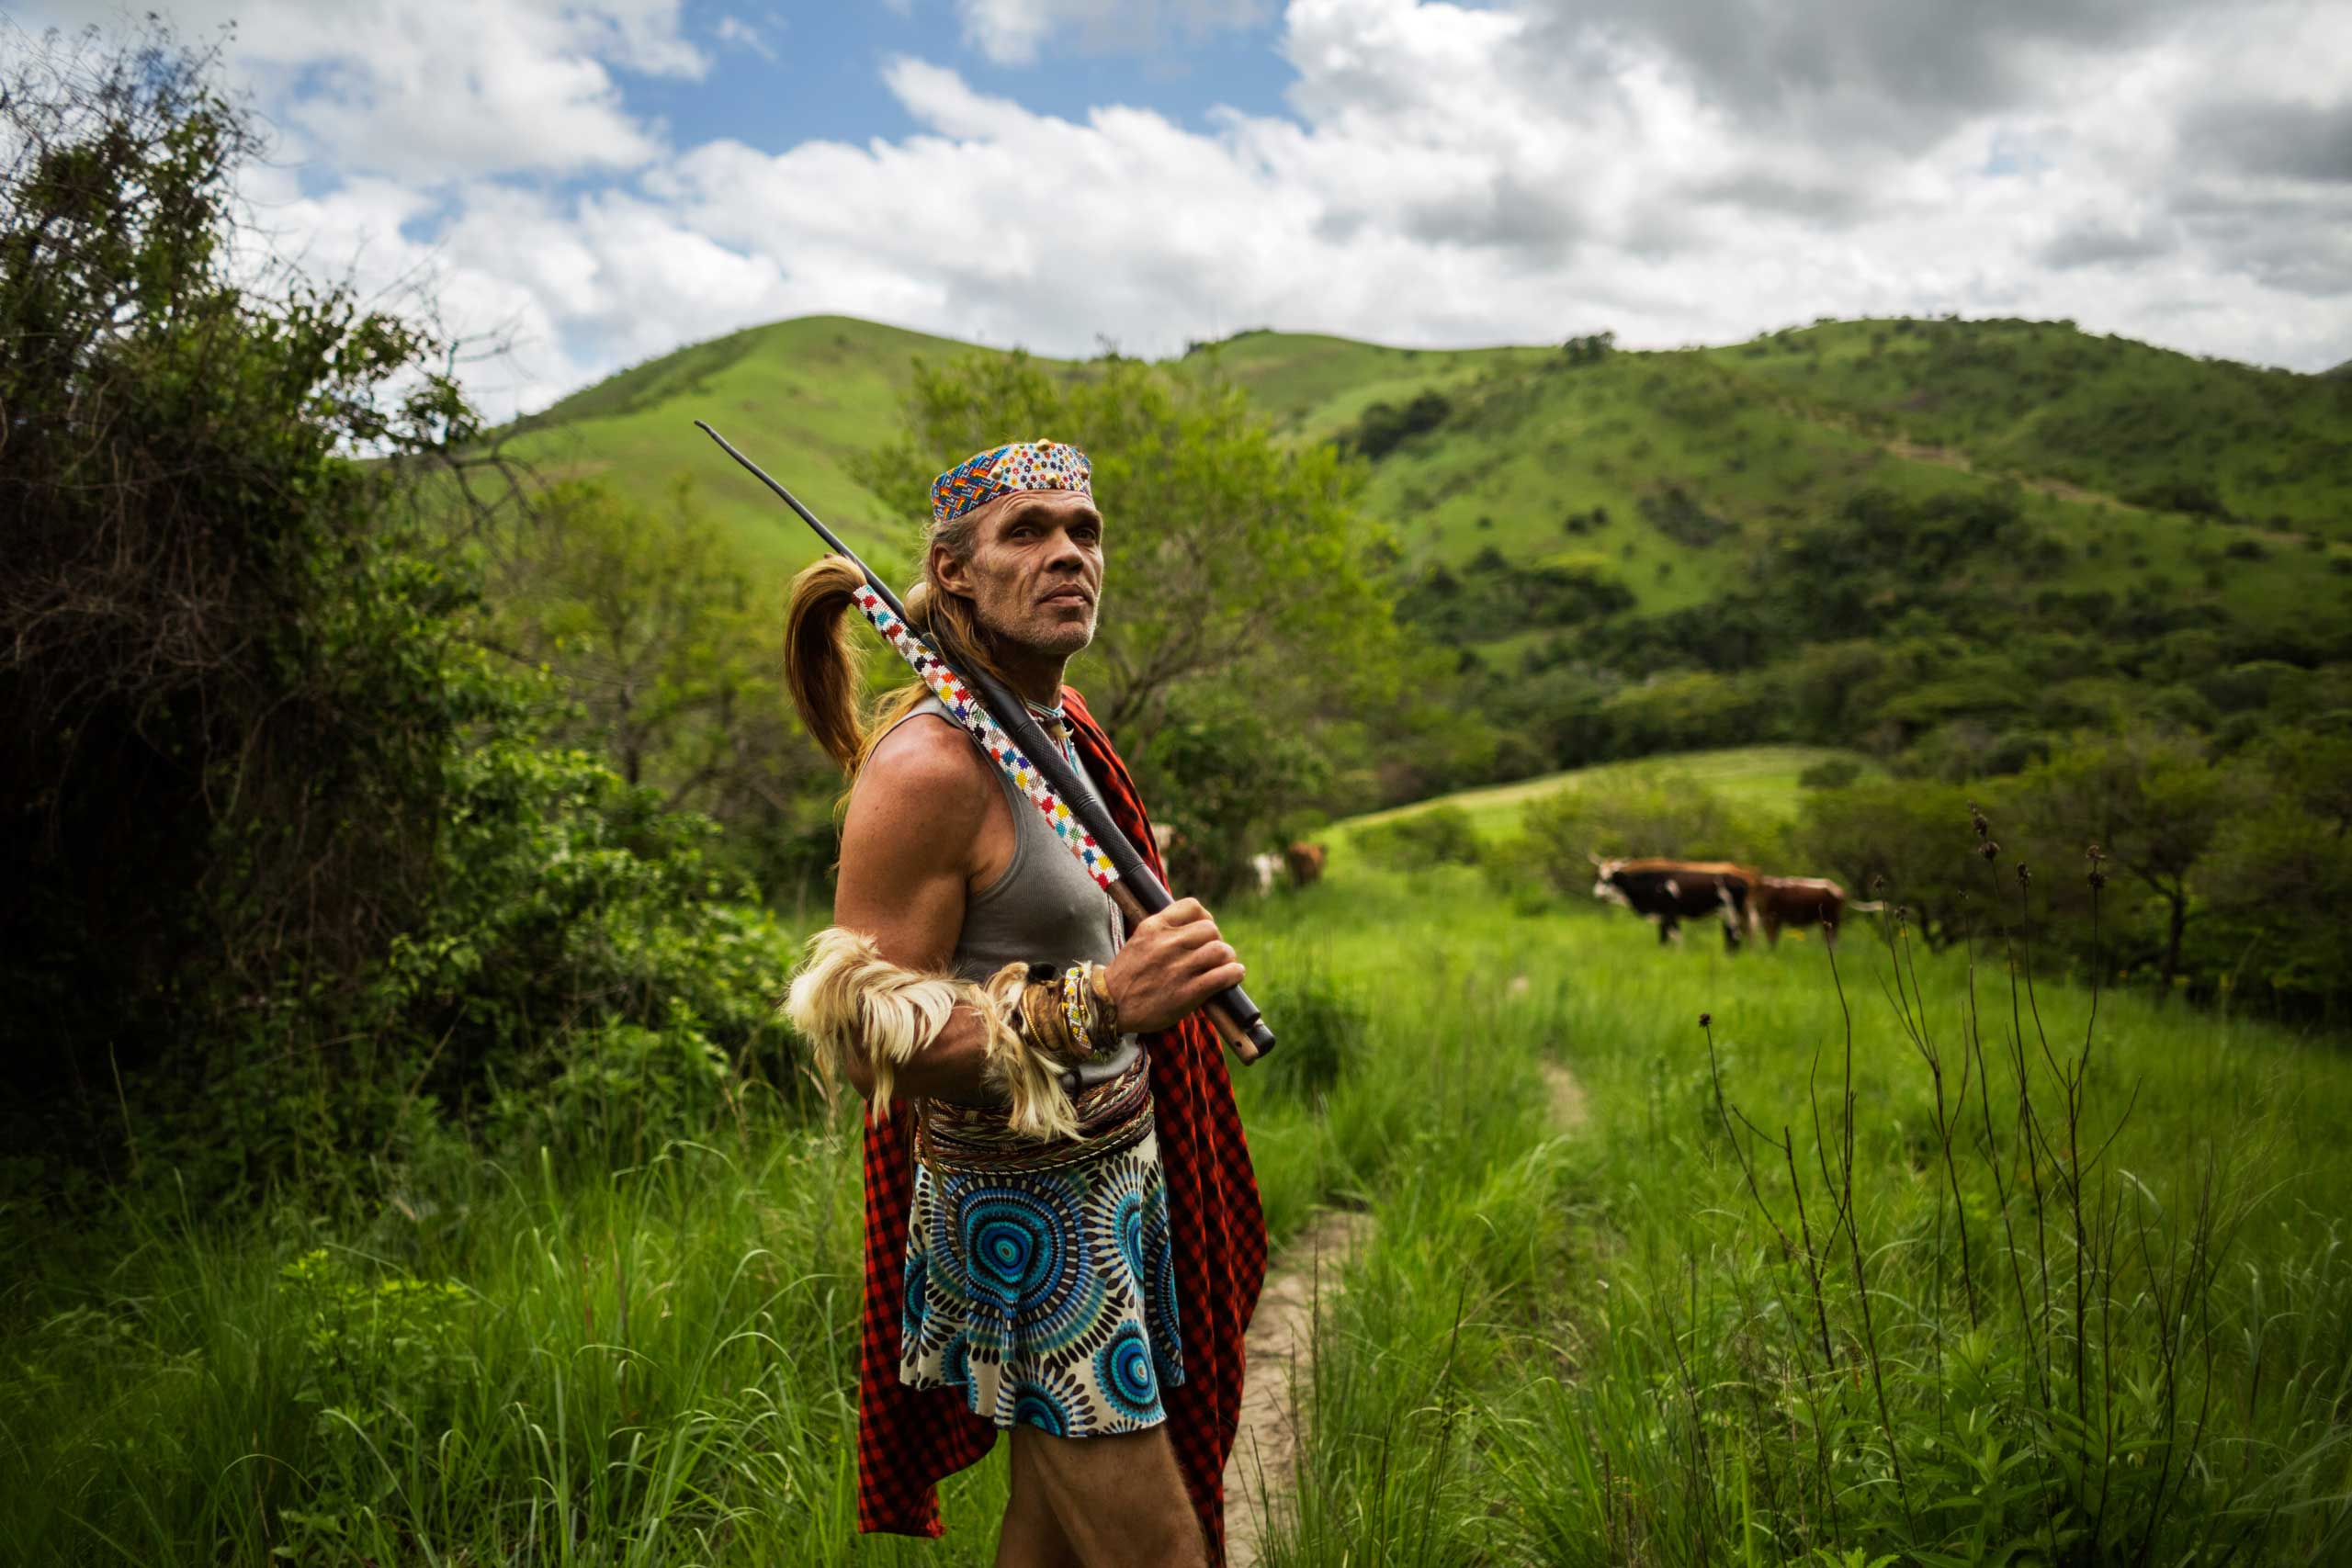 Holding his whip and itshoba (cow-tail whisk) in his hand, Chris Ntombemhlophe Reid pauses while he walks through the rural areas of the Transkei to check on his thwasa, Nolwandle, on Nov. 17, 2014 in Mdakane, Lusikisiki District, South Africa.